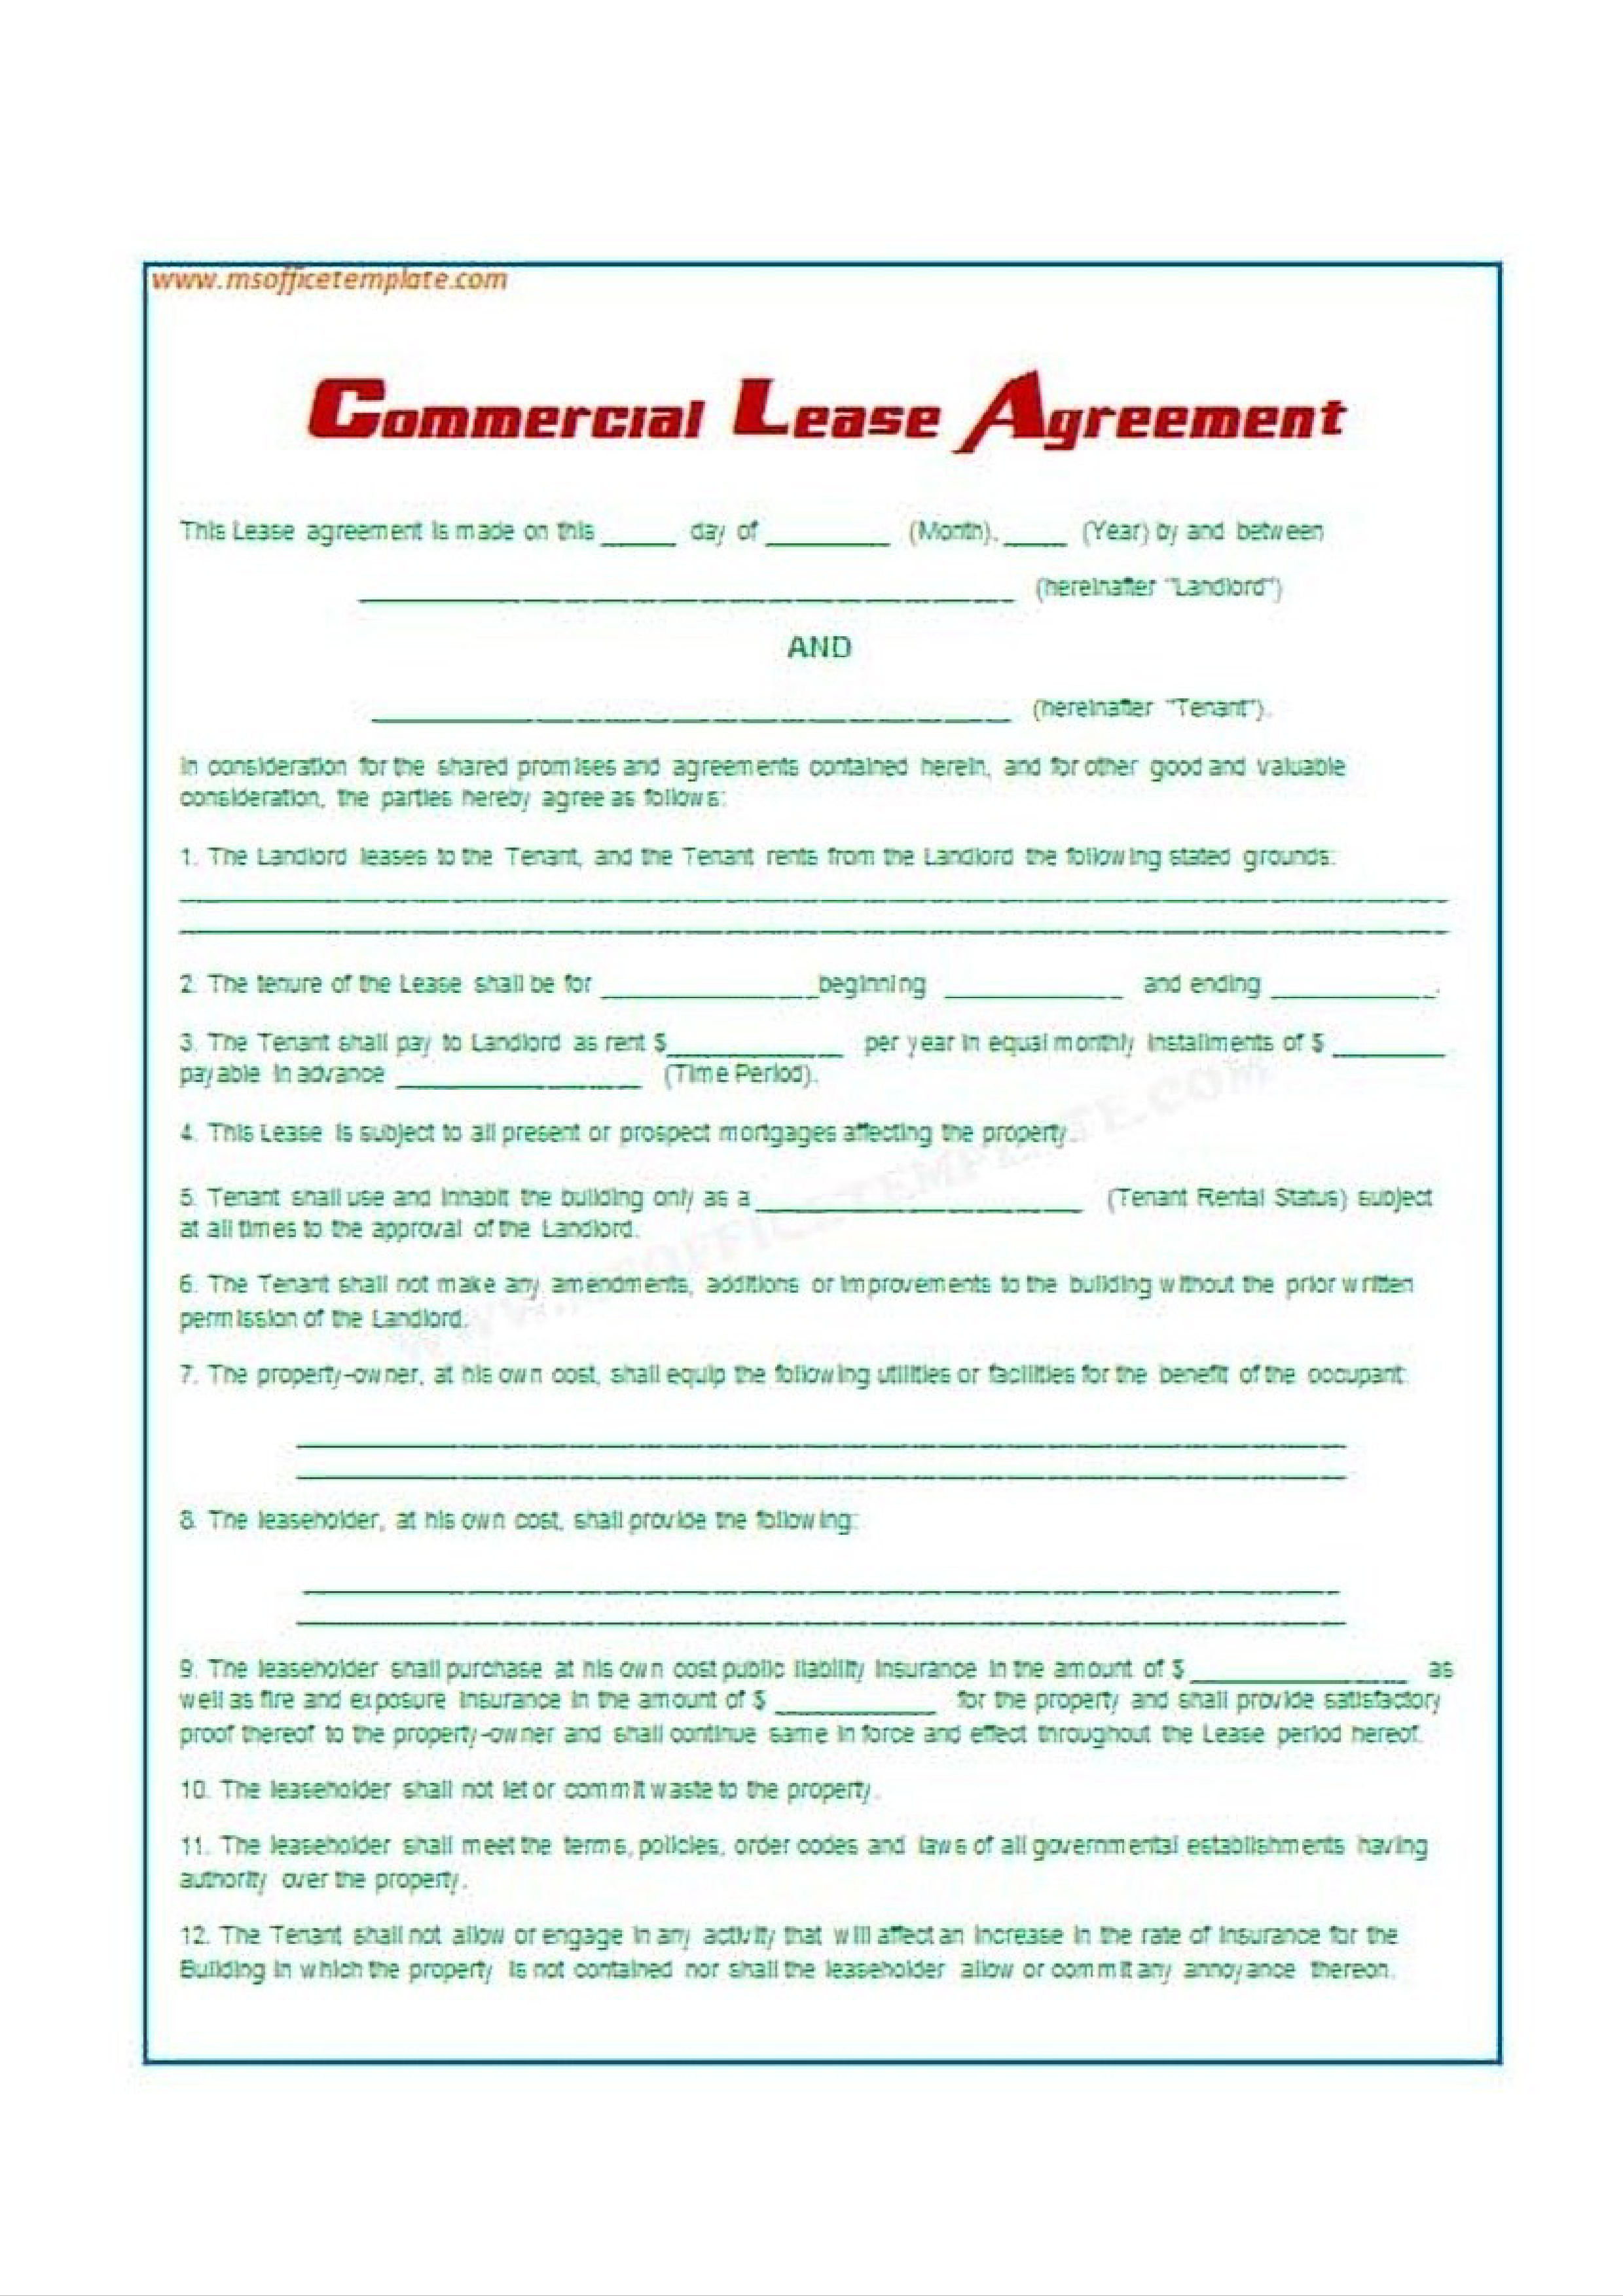 Free Lease Agreements Sample Templates At Allbusinesstemplates